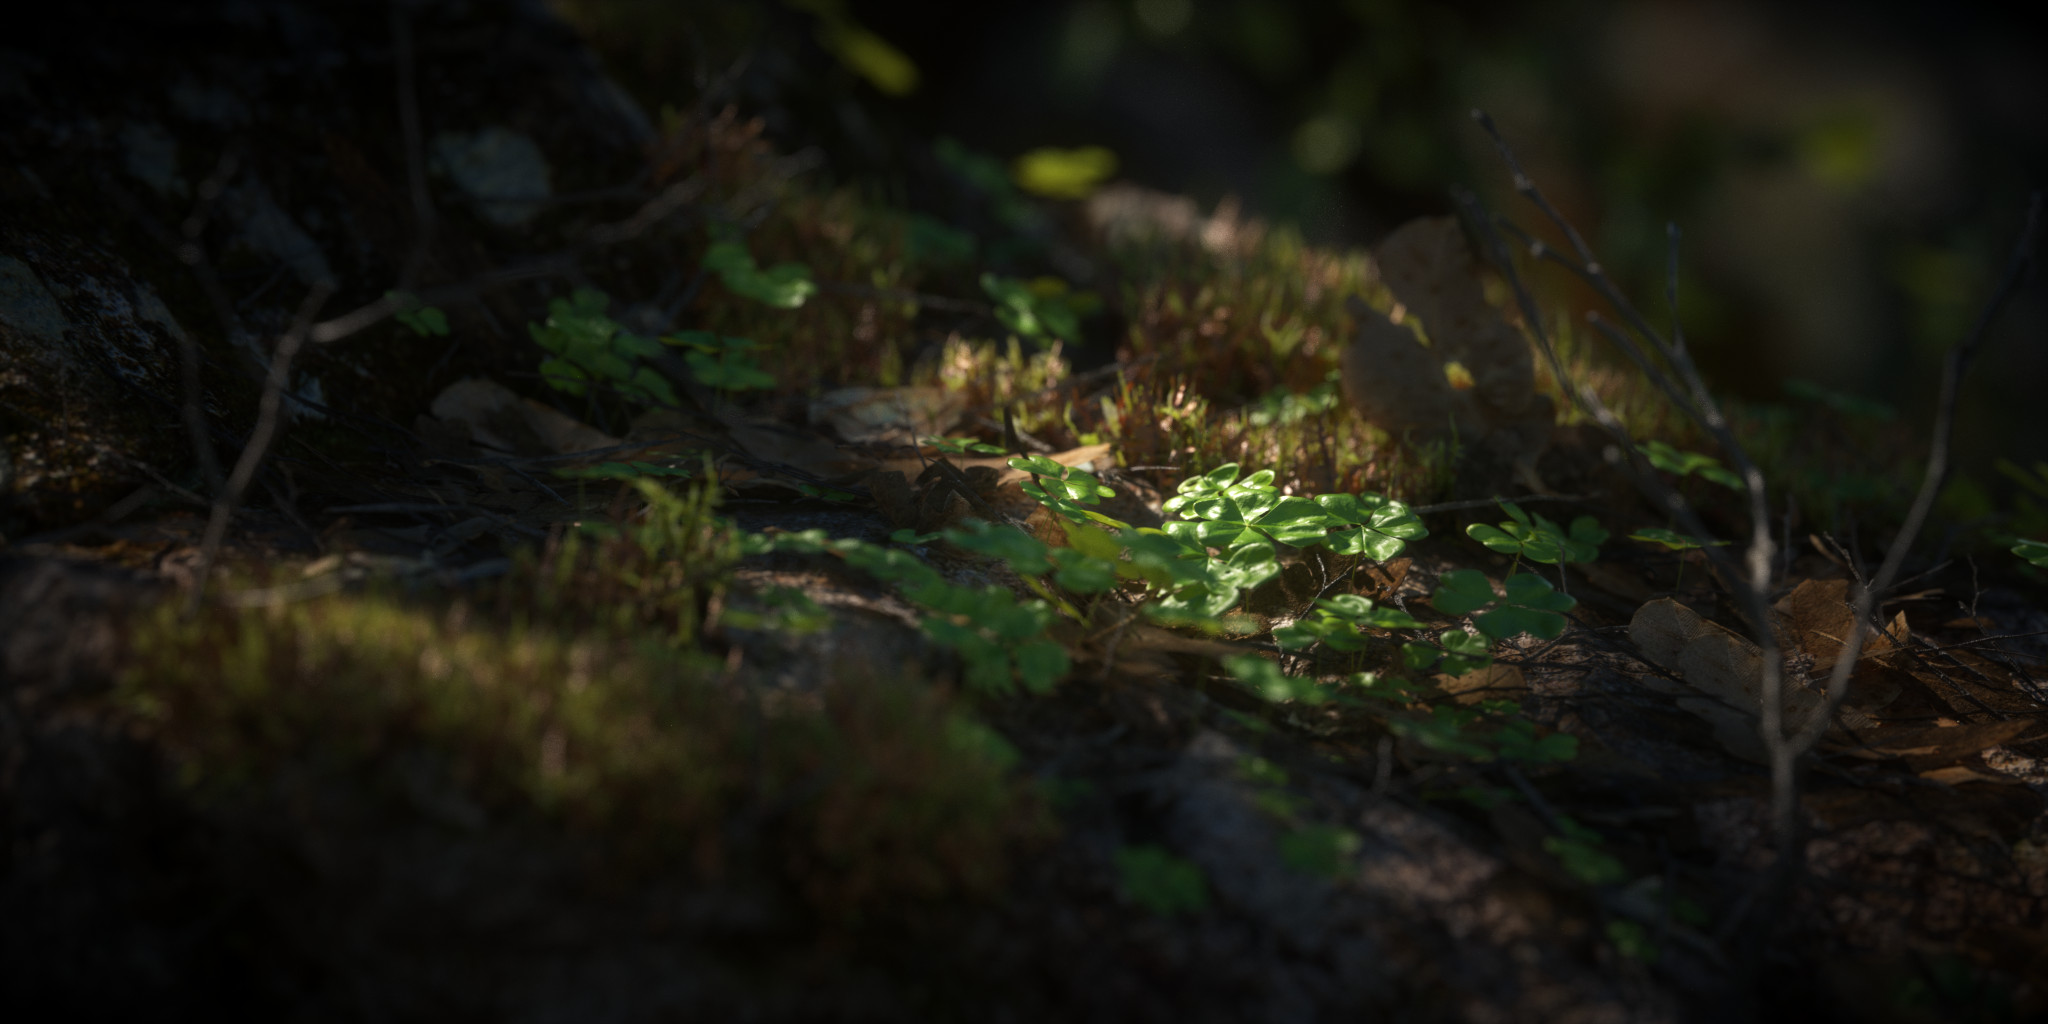 Direct frame from Octane - no post work was done in this image